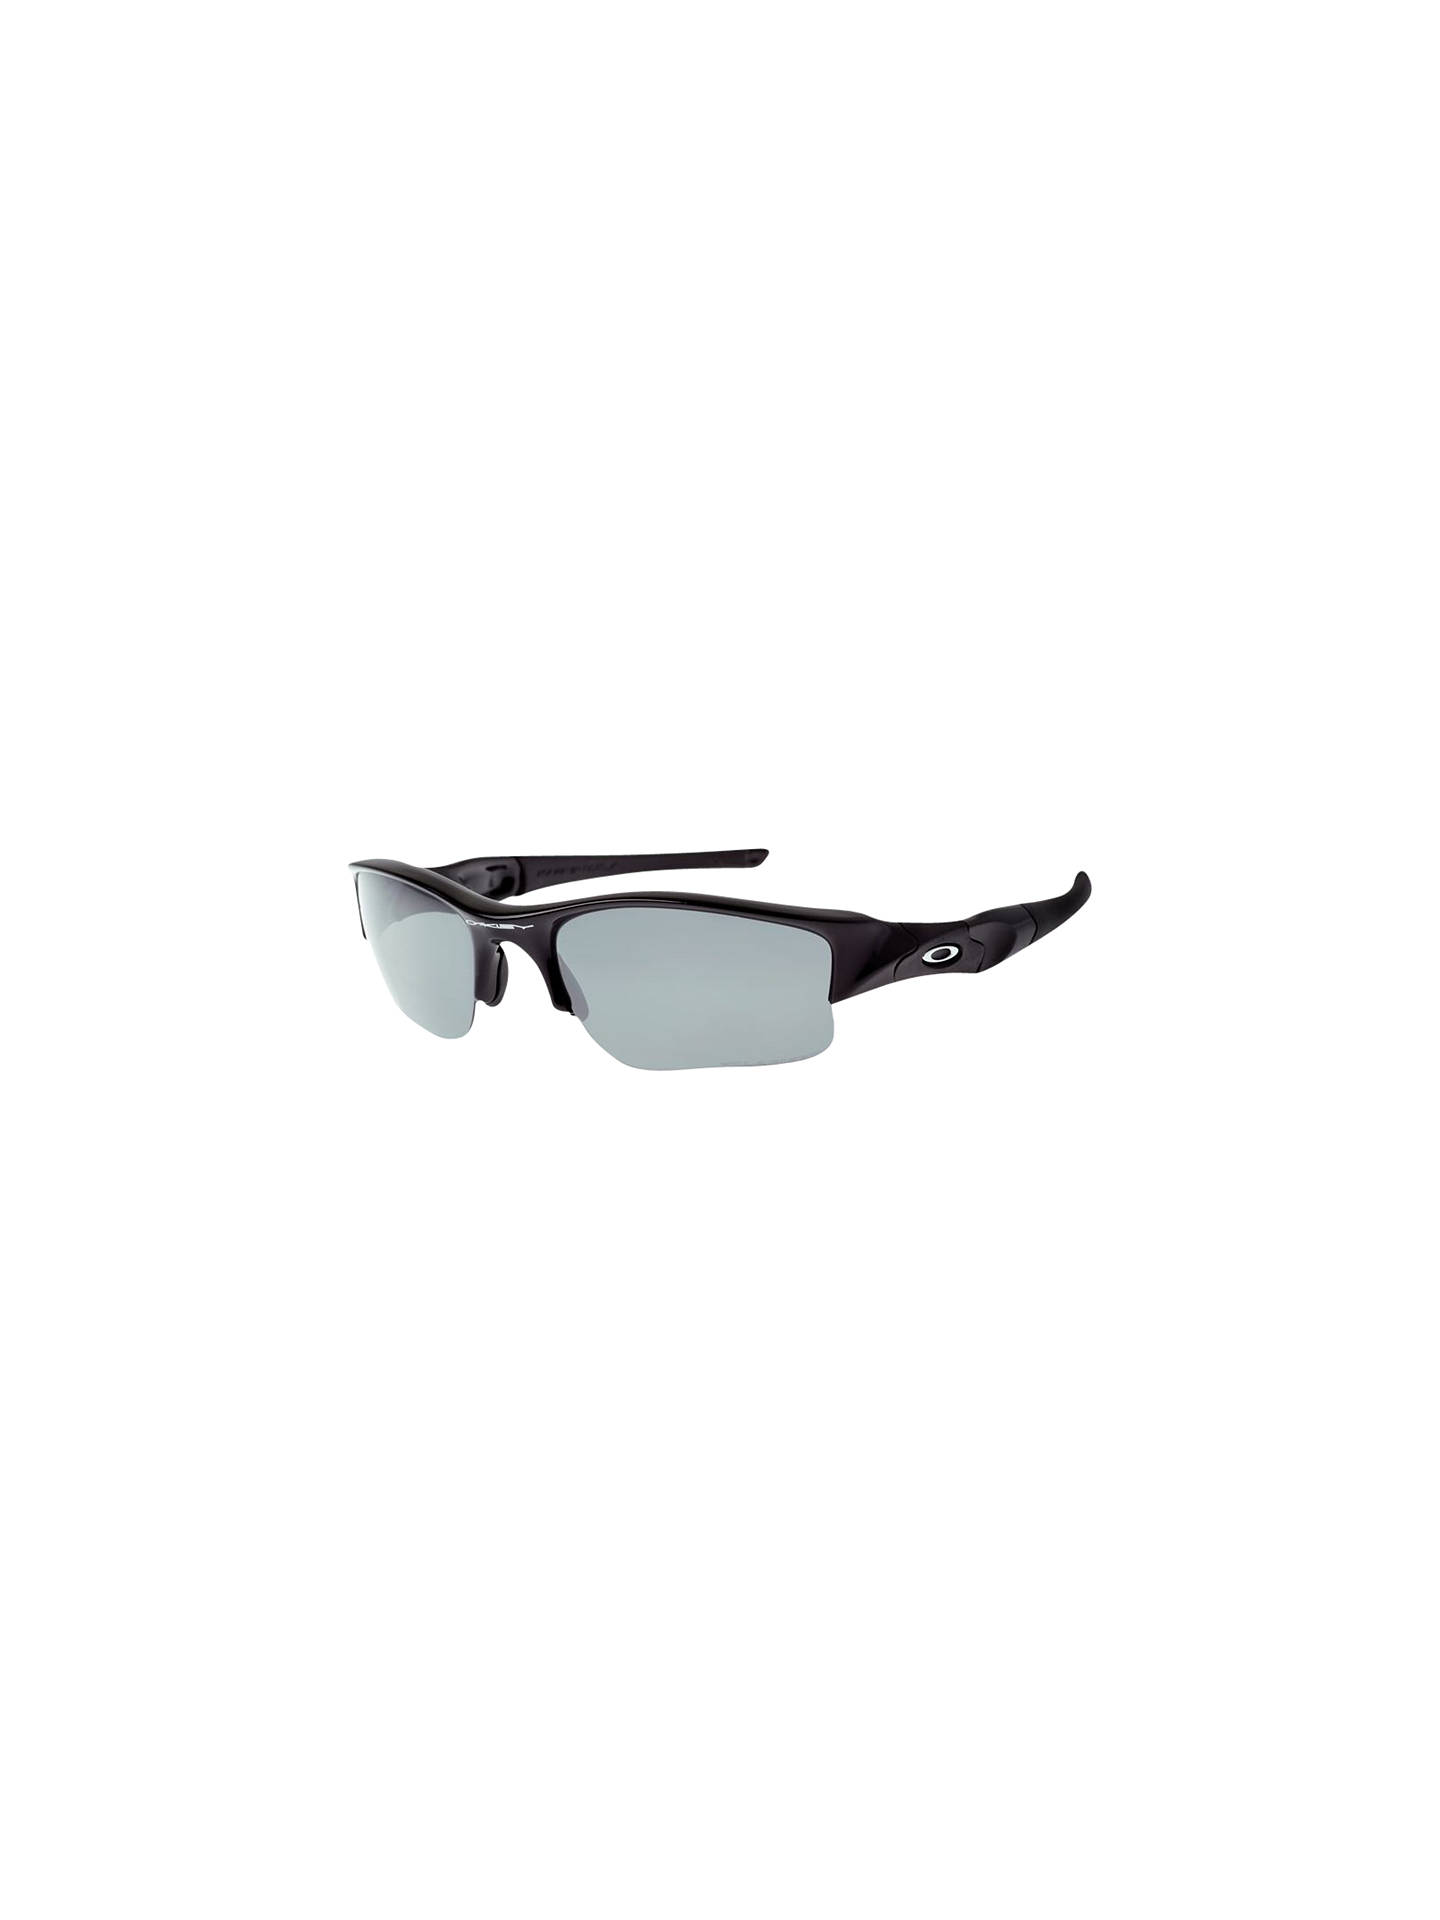 Oakley OO9011 Flak Jacket XLJ Polarised Wrap Around Sunglasses ... 129705fb858